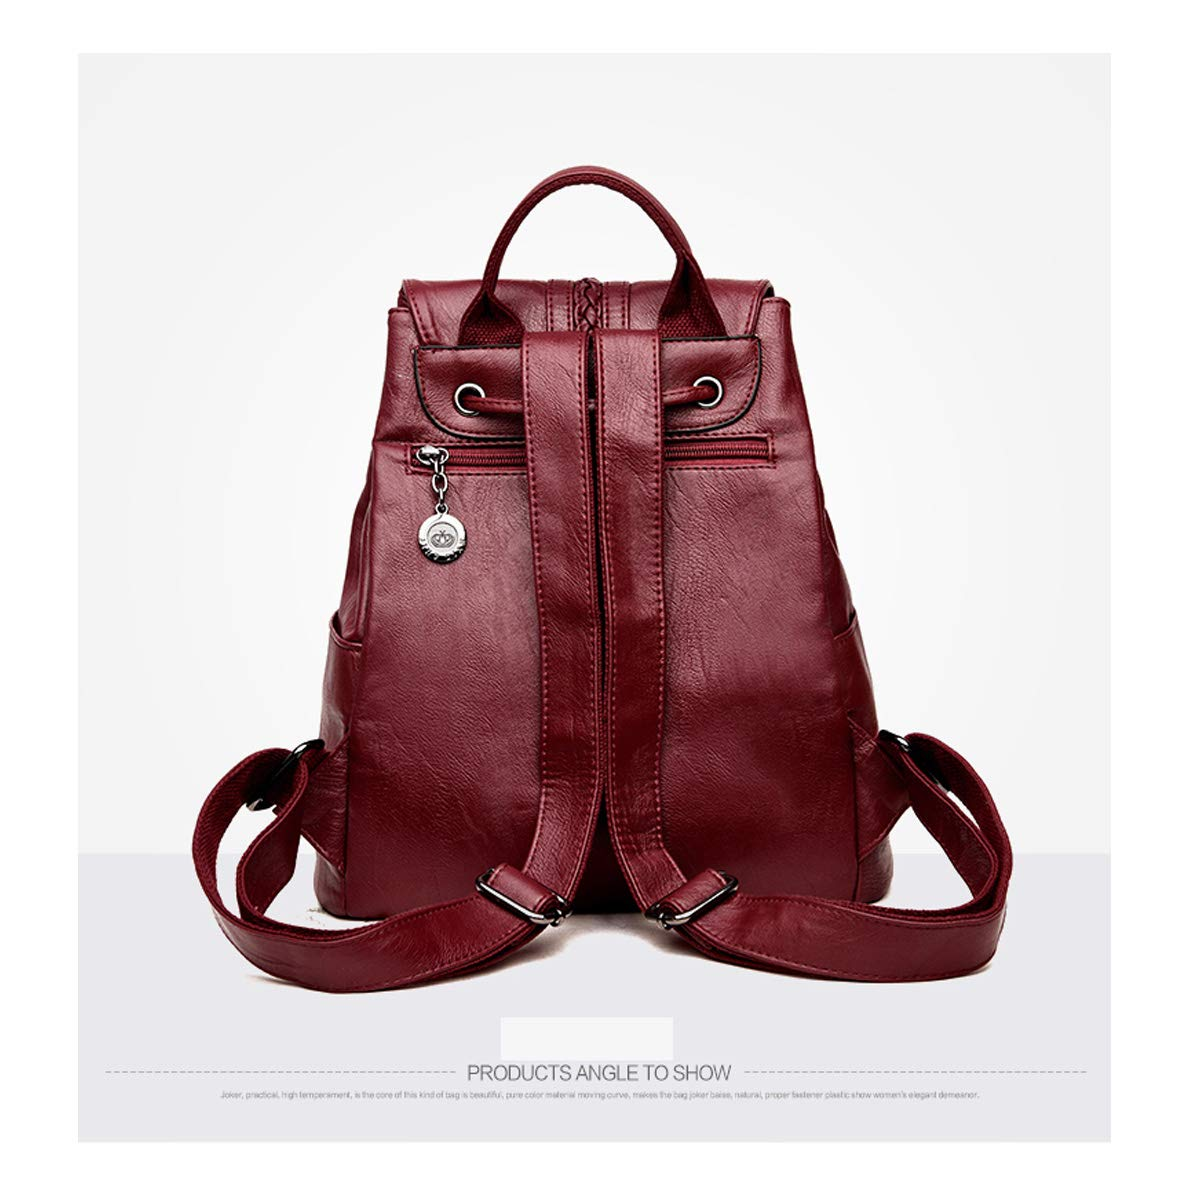 PU Leather ZHICHUANG Girls Multipurpose Backpack for Daily Travel//Outdoor//Travel//School//Work//Fashion//Leisure Five Colors for Women /& Men Generous and Simple